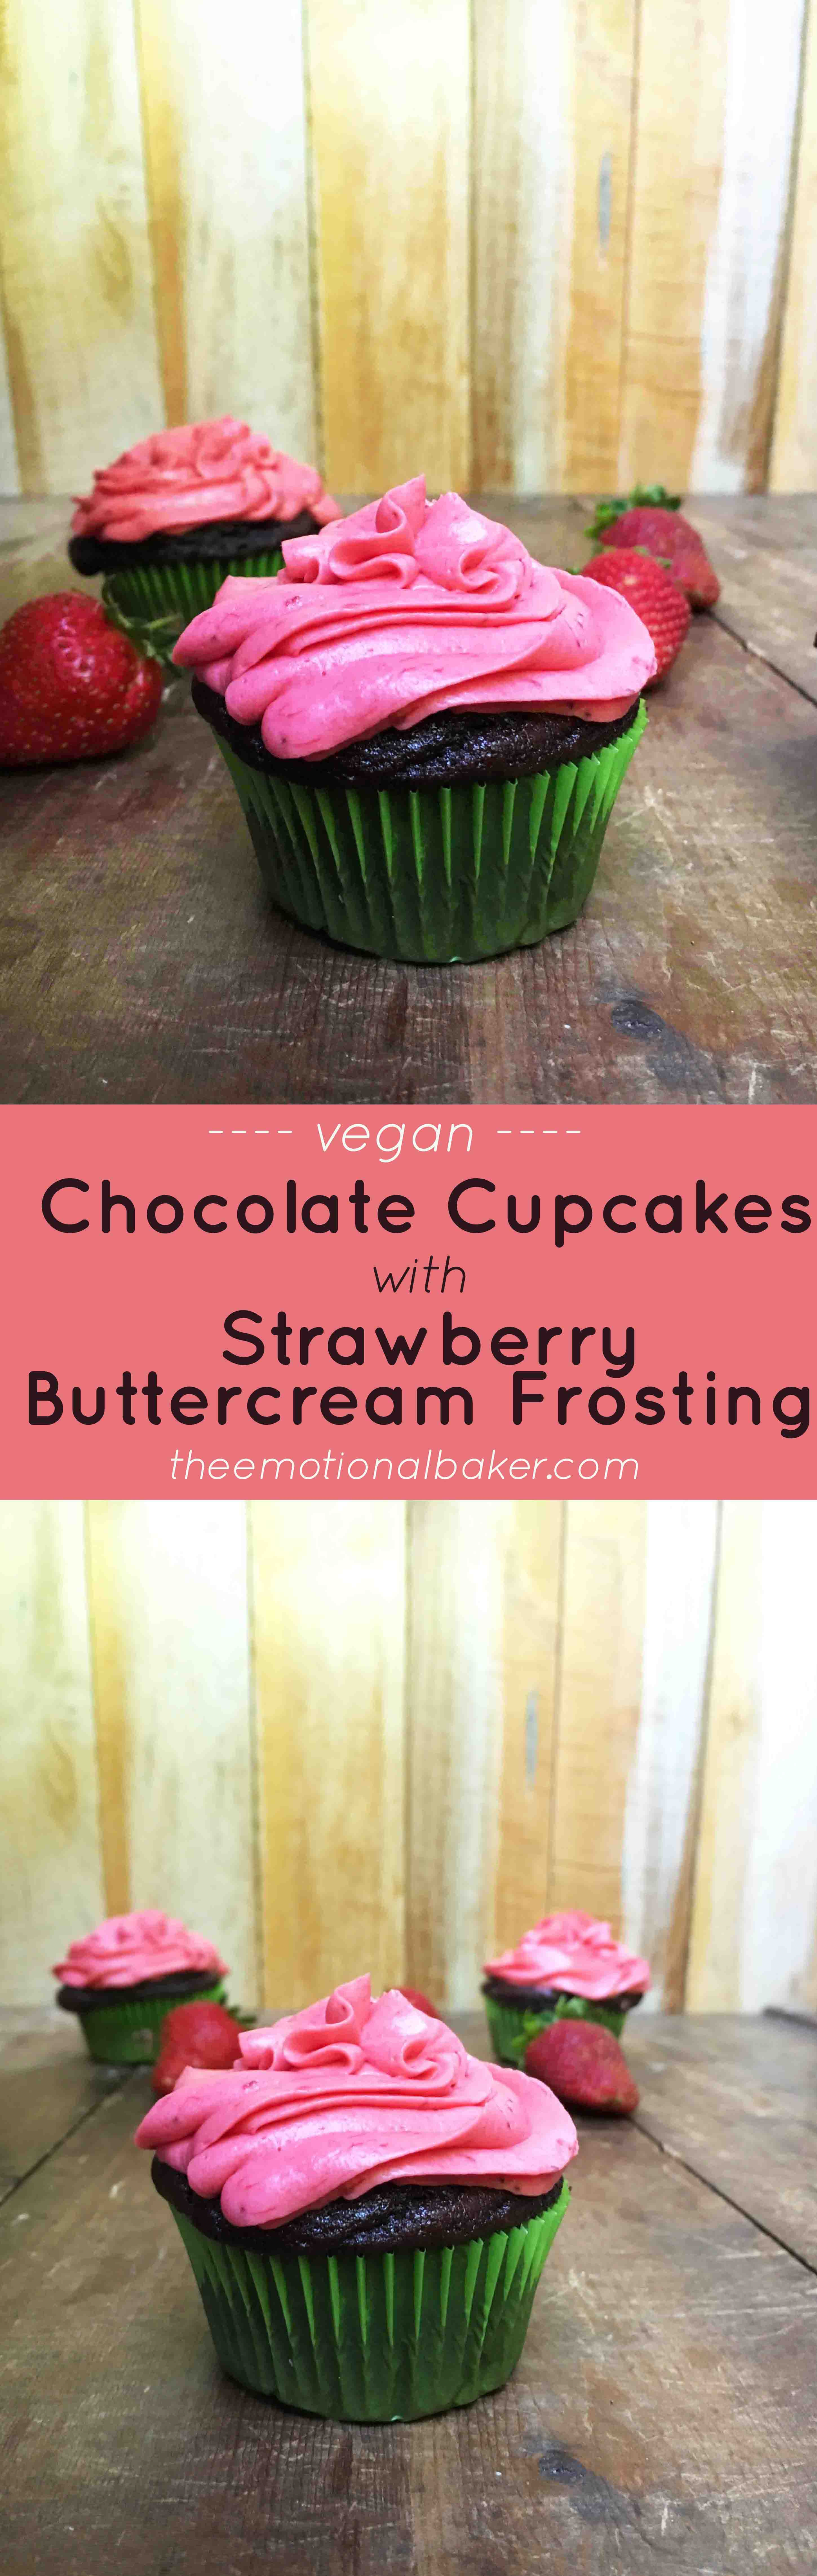 Vegan} Chocolate Cupcakes With Strawberry Buttercream Frosting ...